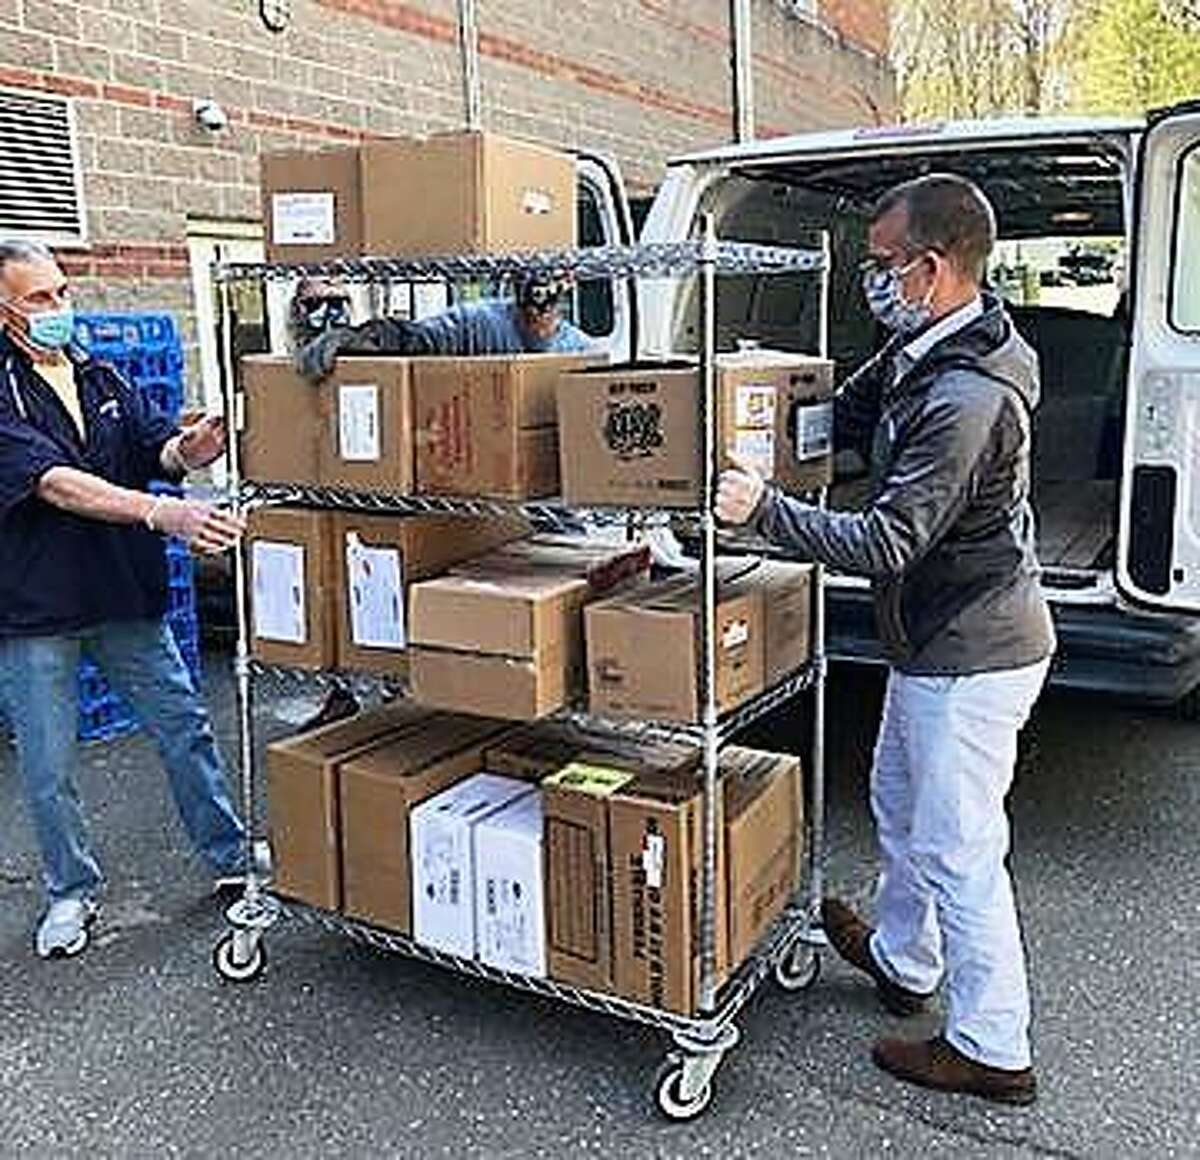 Bob Lisi, Ansonia schools youth outreach officer, left, and TEAM President/CEO David Morgan, right, load frozen food for donation.